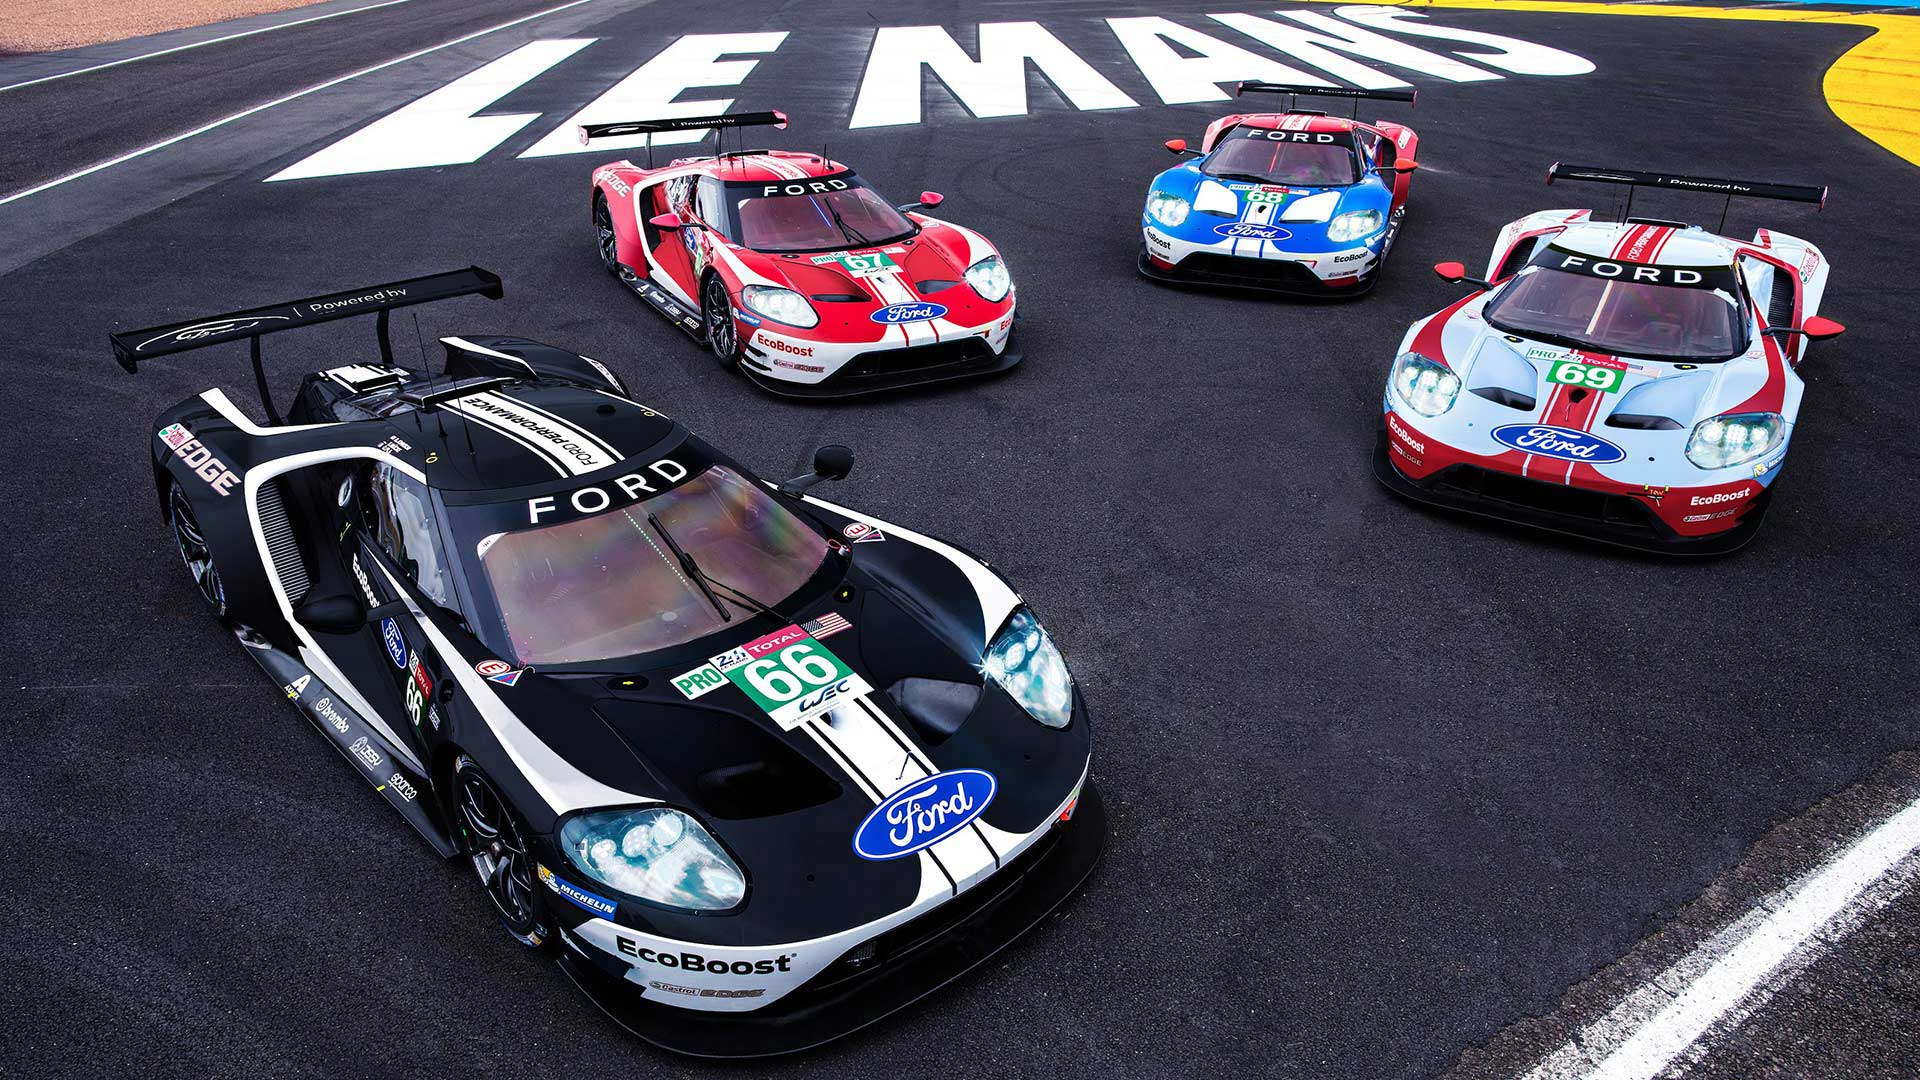 2019 Ford at Le Mans with historic liveries